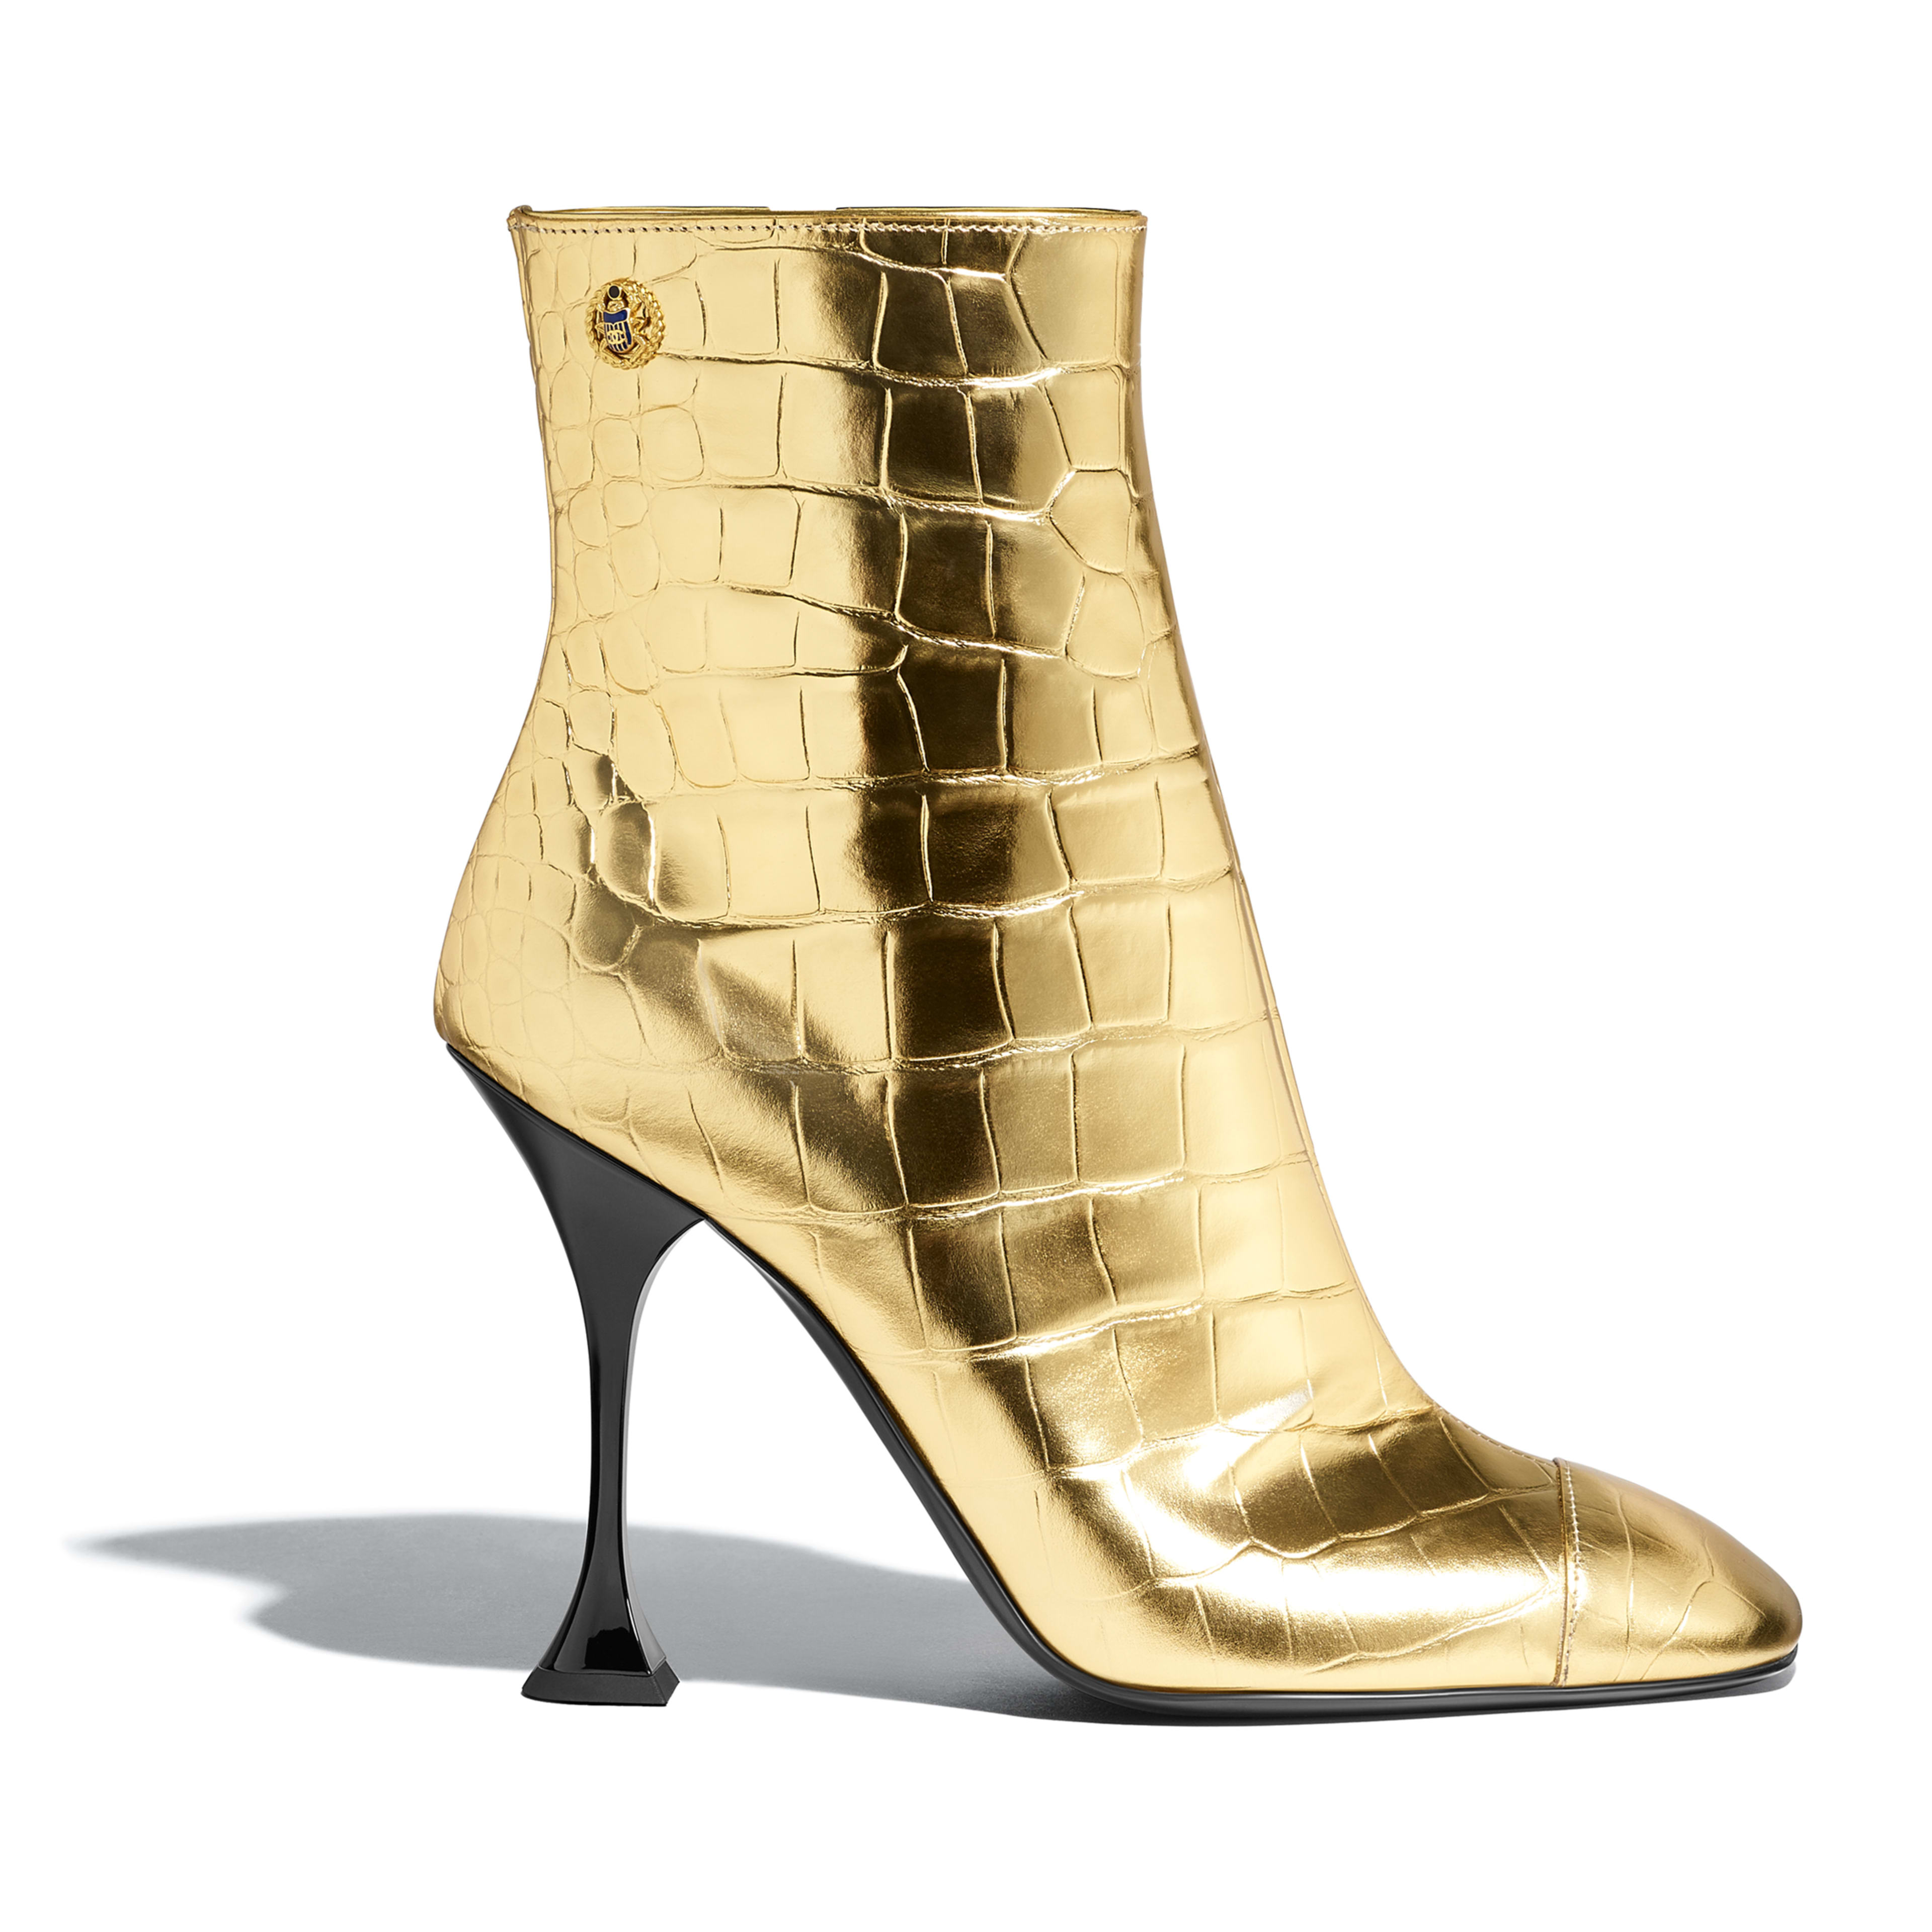 Ankle Boots - Gold - Crocodile Embossed Metallic Calfskin - Default view - see full sized version